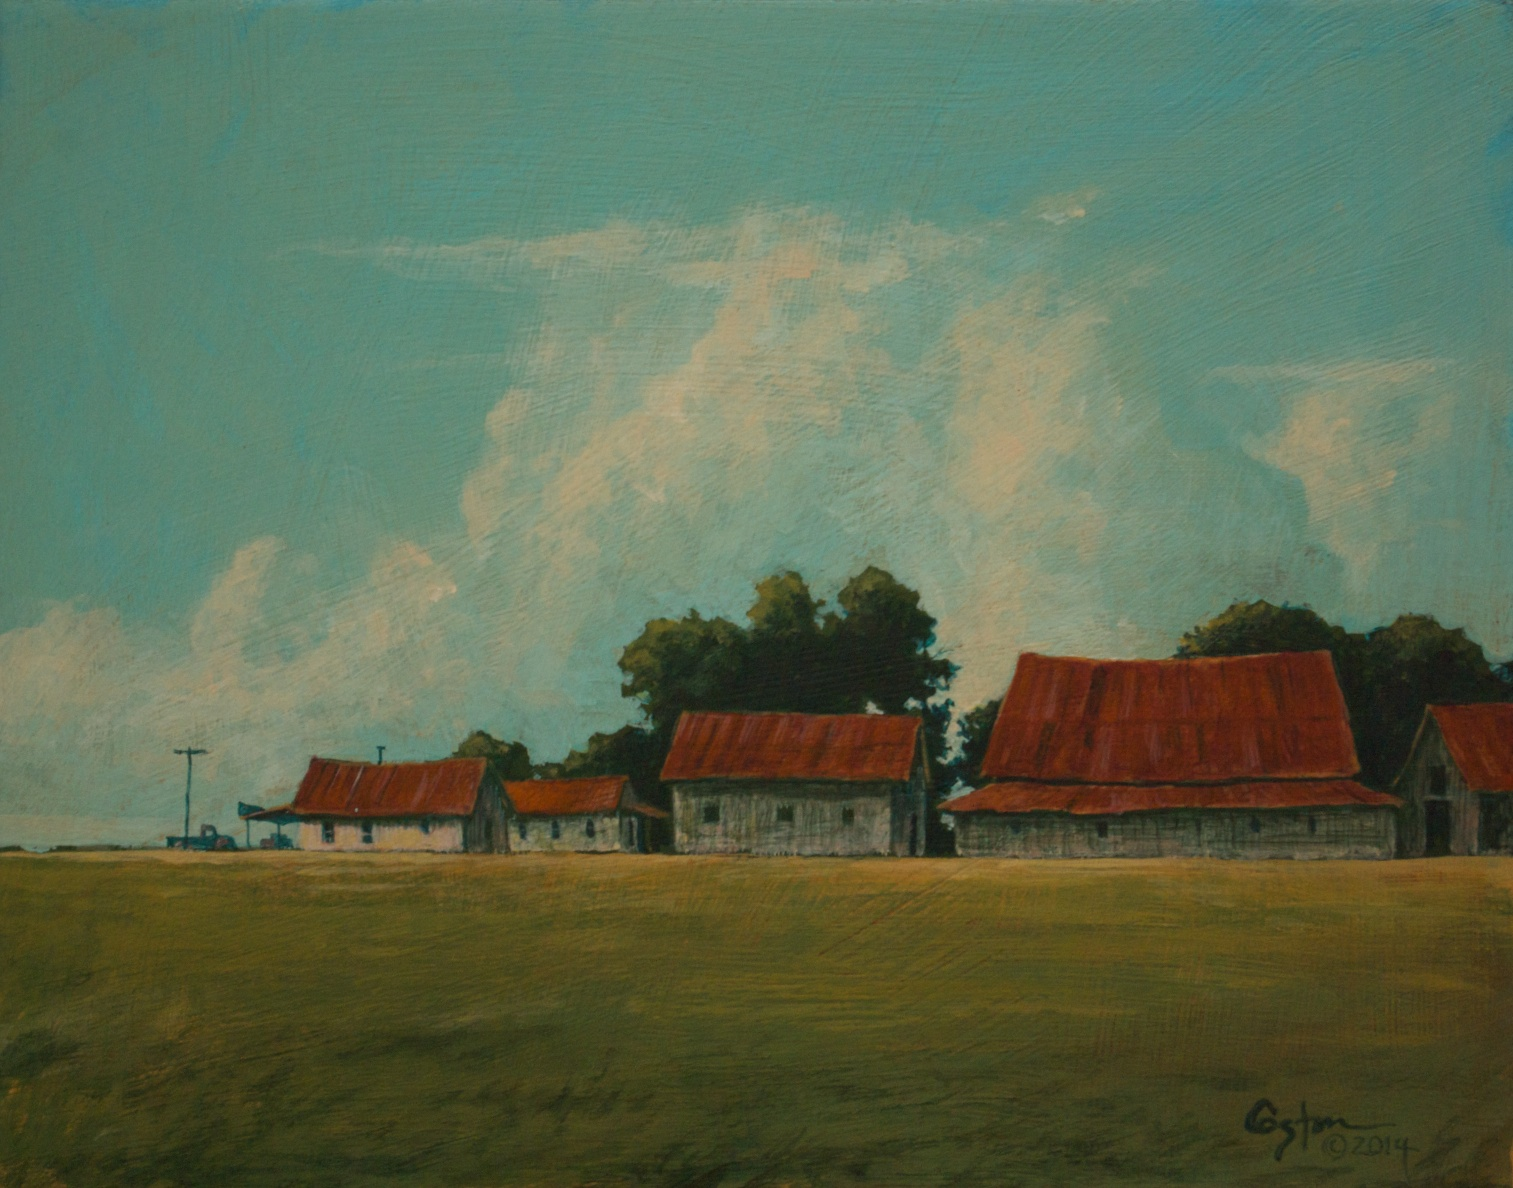 From Plantation to Store, Daniel Coston, 2014